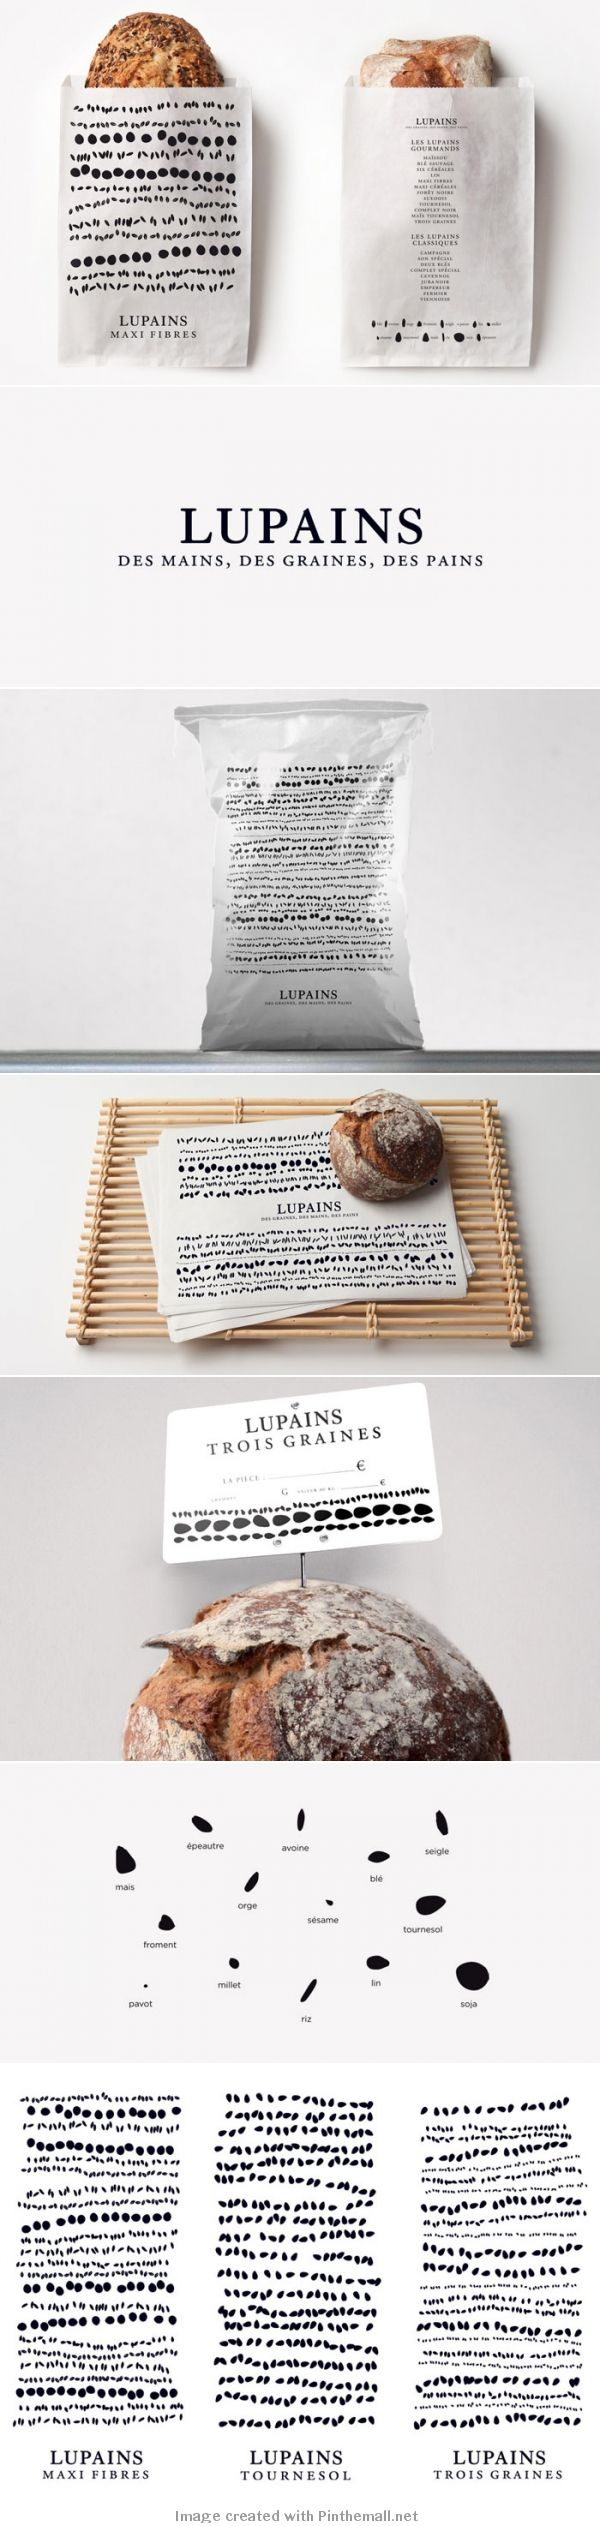 Lupains. Yummy, I could eat this bread for breakfast #identity #packaging PD